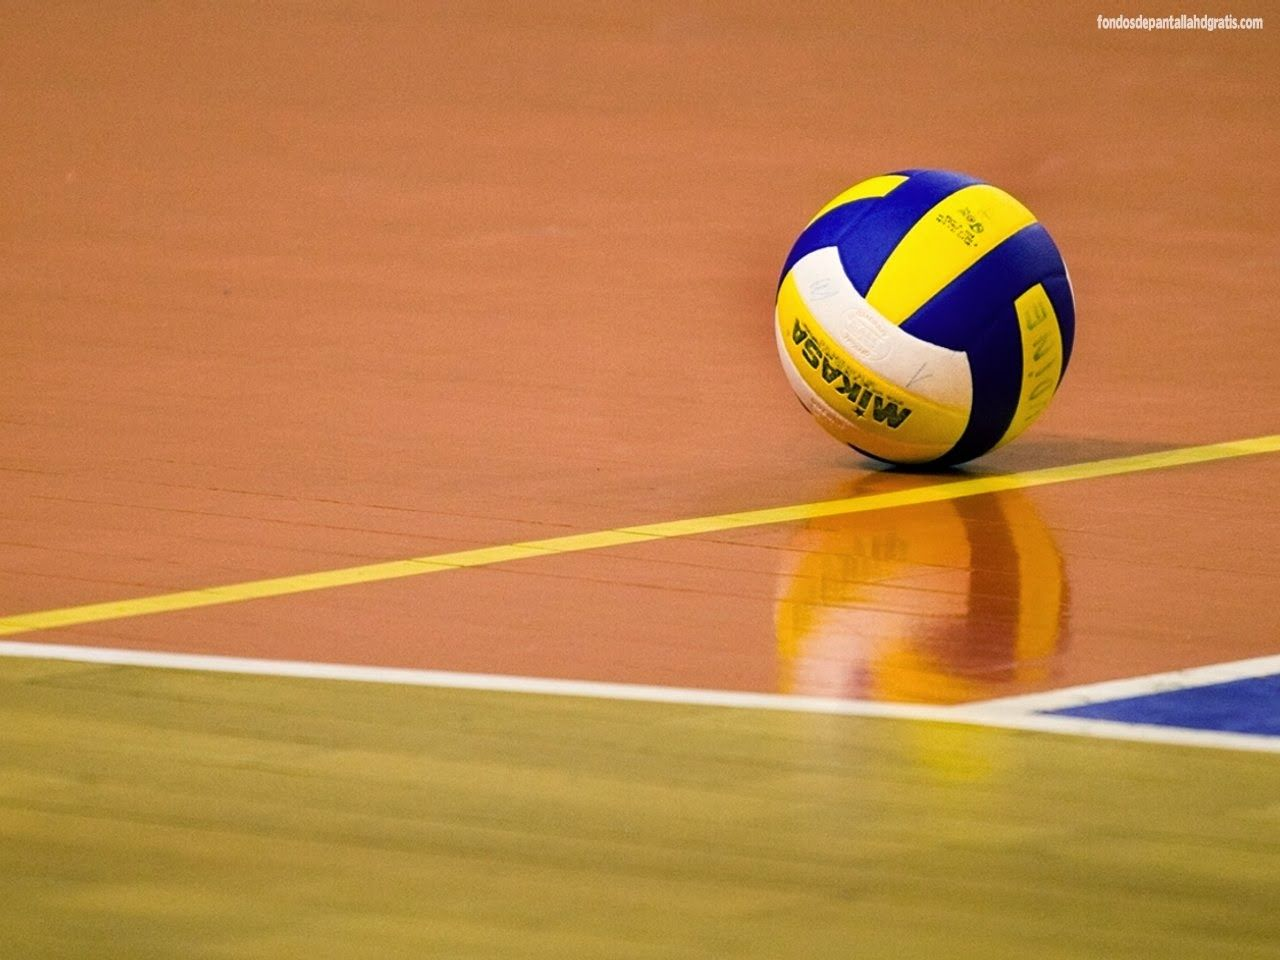 volleyball images download free new wallpapers hd high